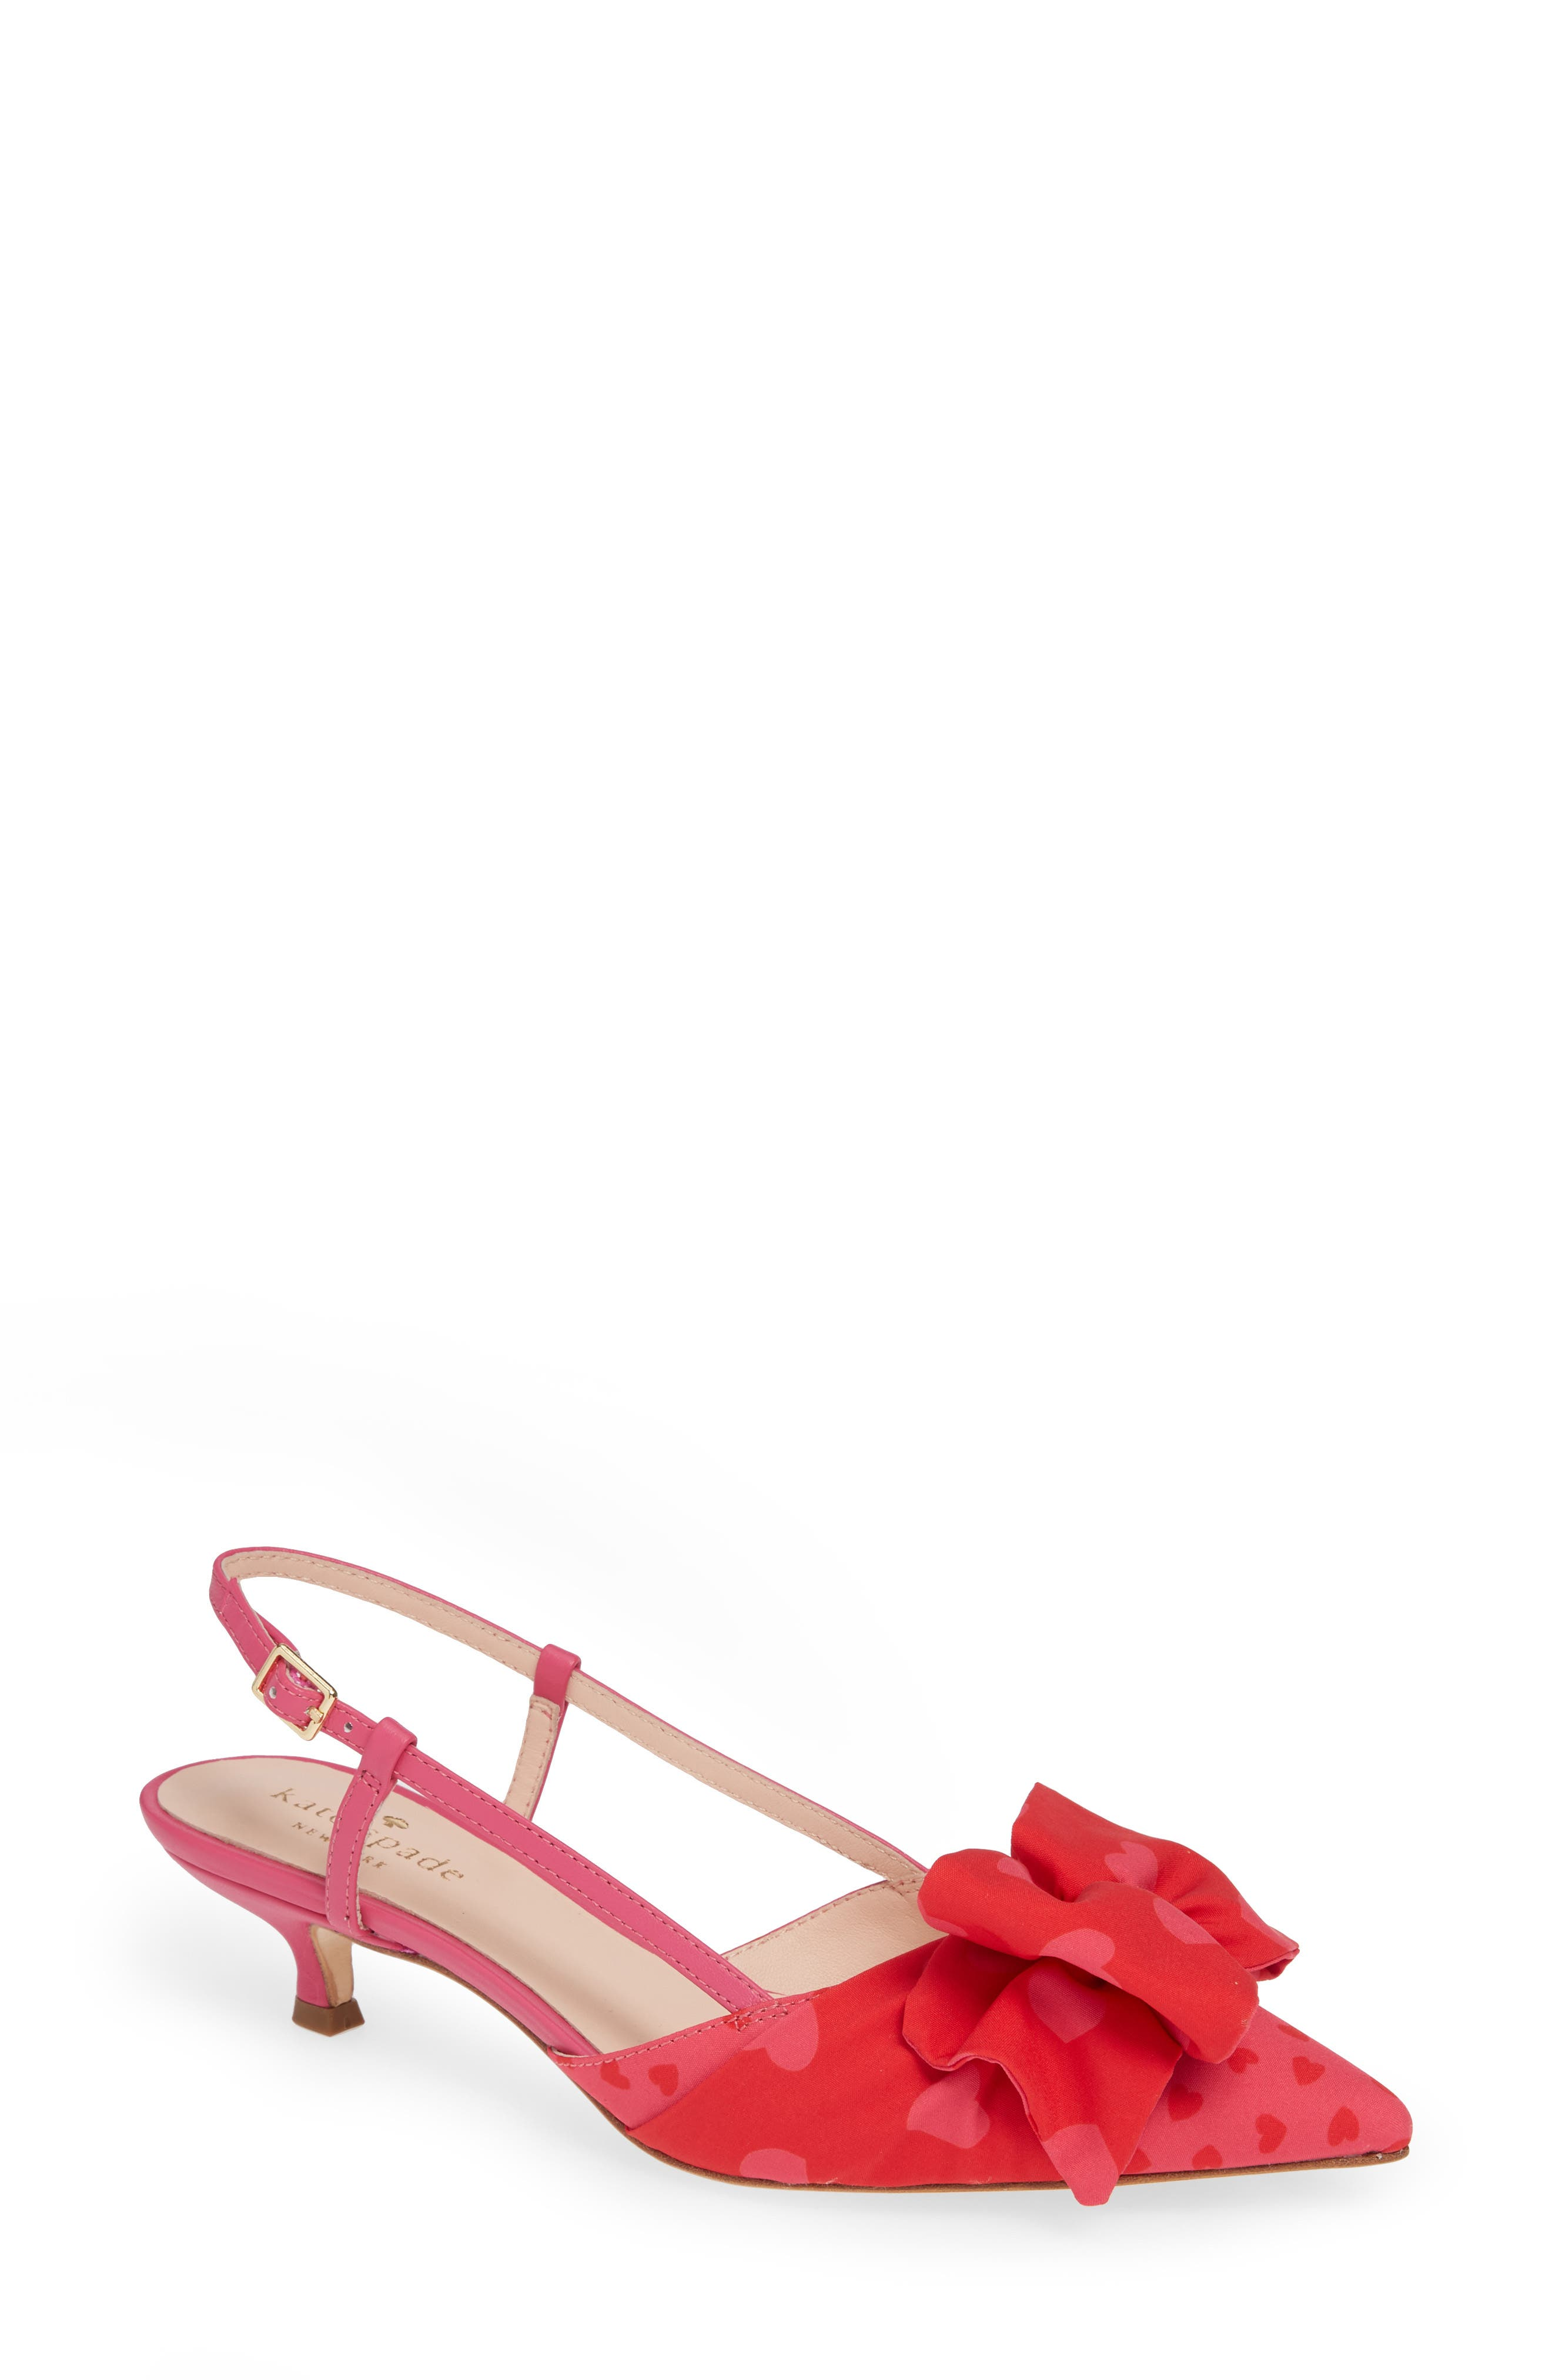 daxton slingback pump,                             Main thumbnail 1, color,                             BEGONIA/ ENGINE RED HEART